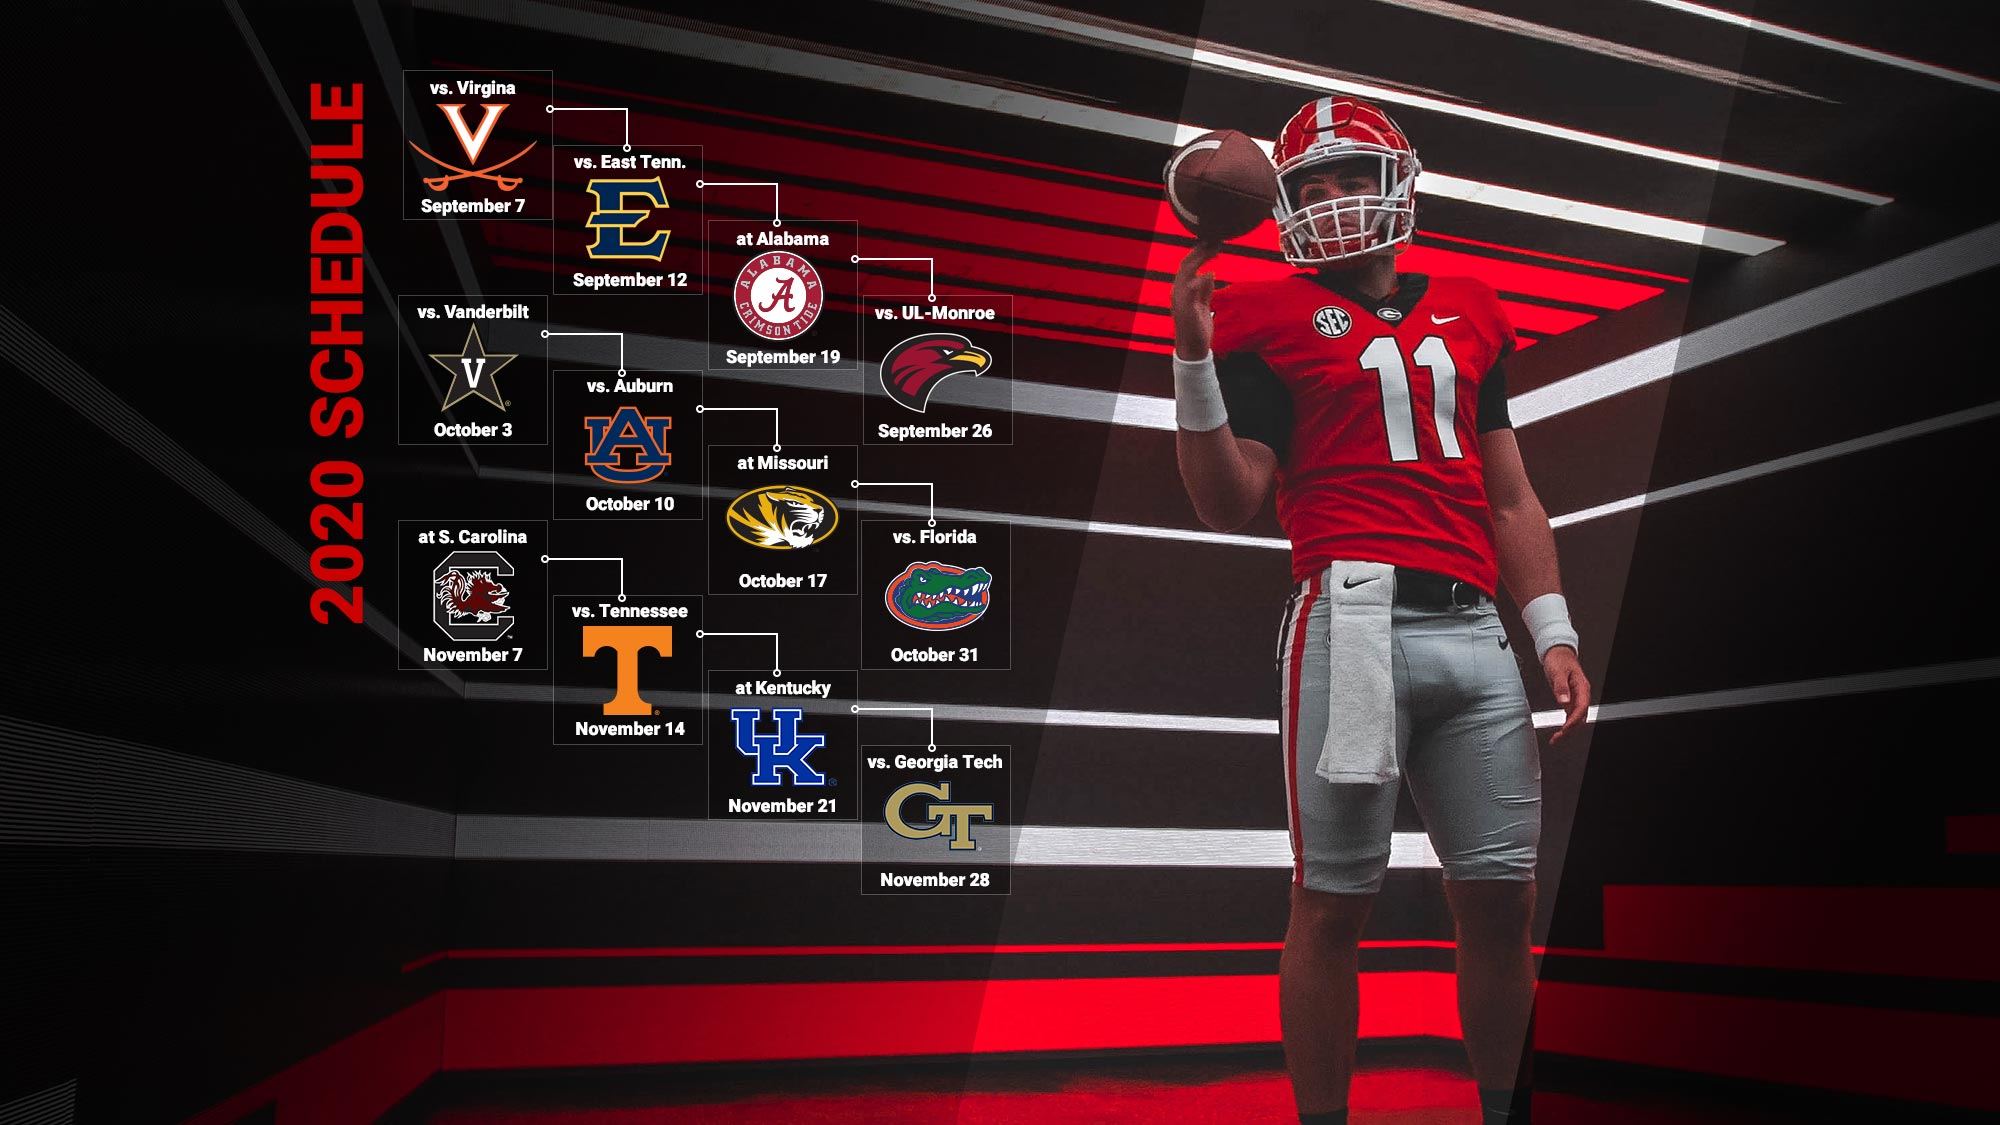 Mu Football Schedule 2020 Chick fil A Kickoff, Alabama Highlight 2020 Schedule   University